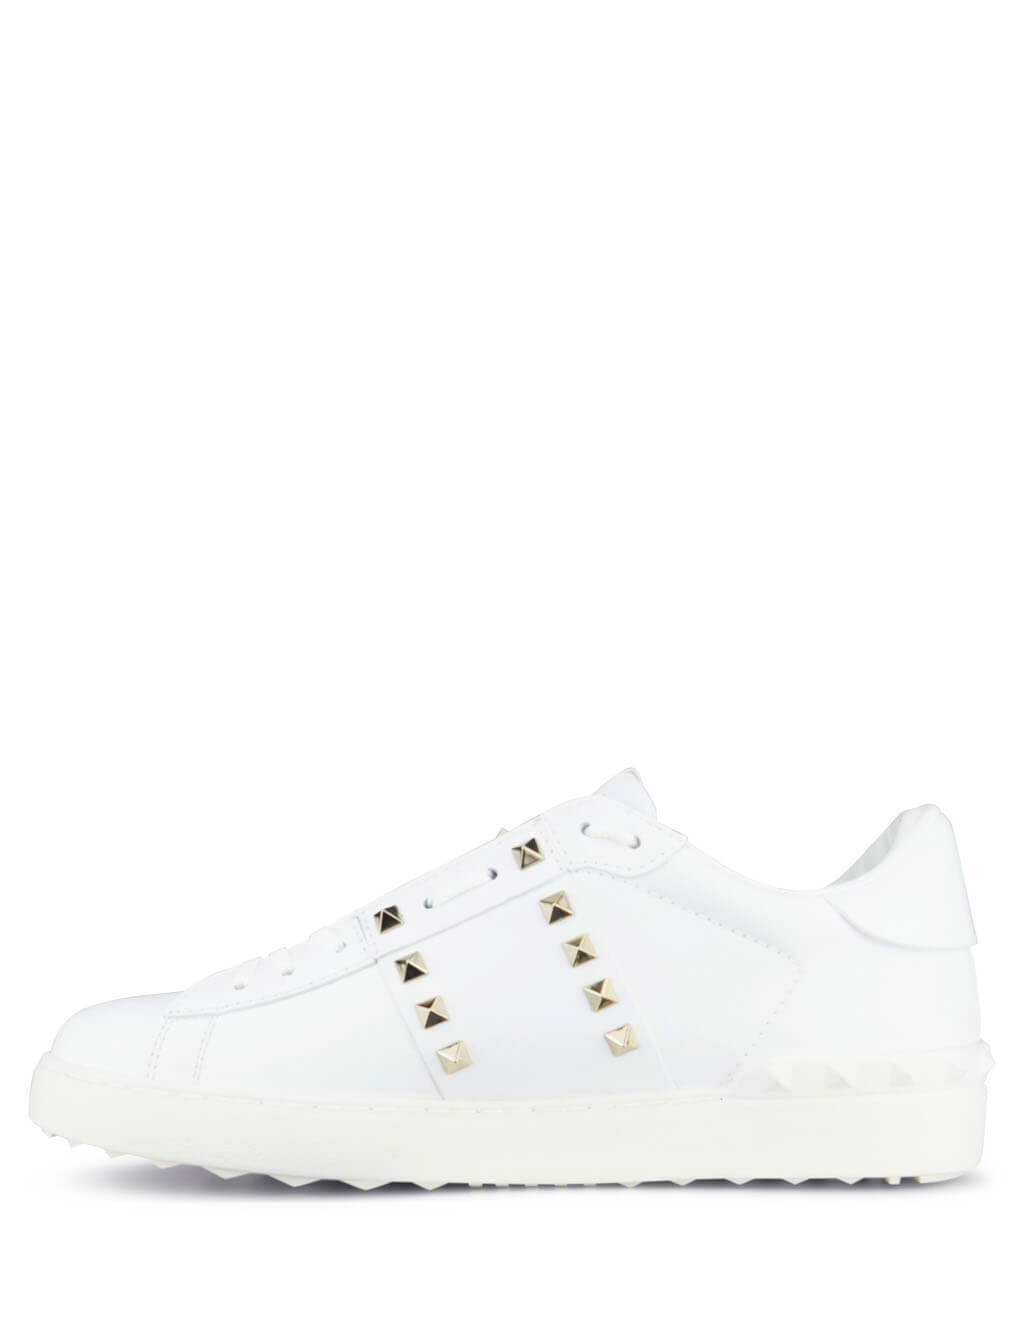 Valentino Men's Giulio Fashion White Rockstud Untitled Sneakers QY2S0931BHS0BO